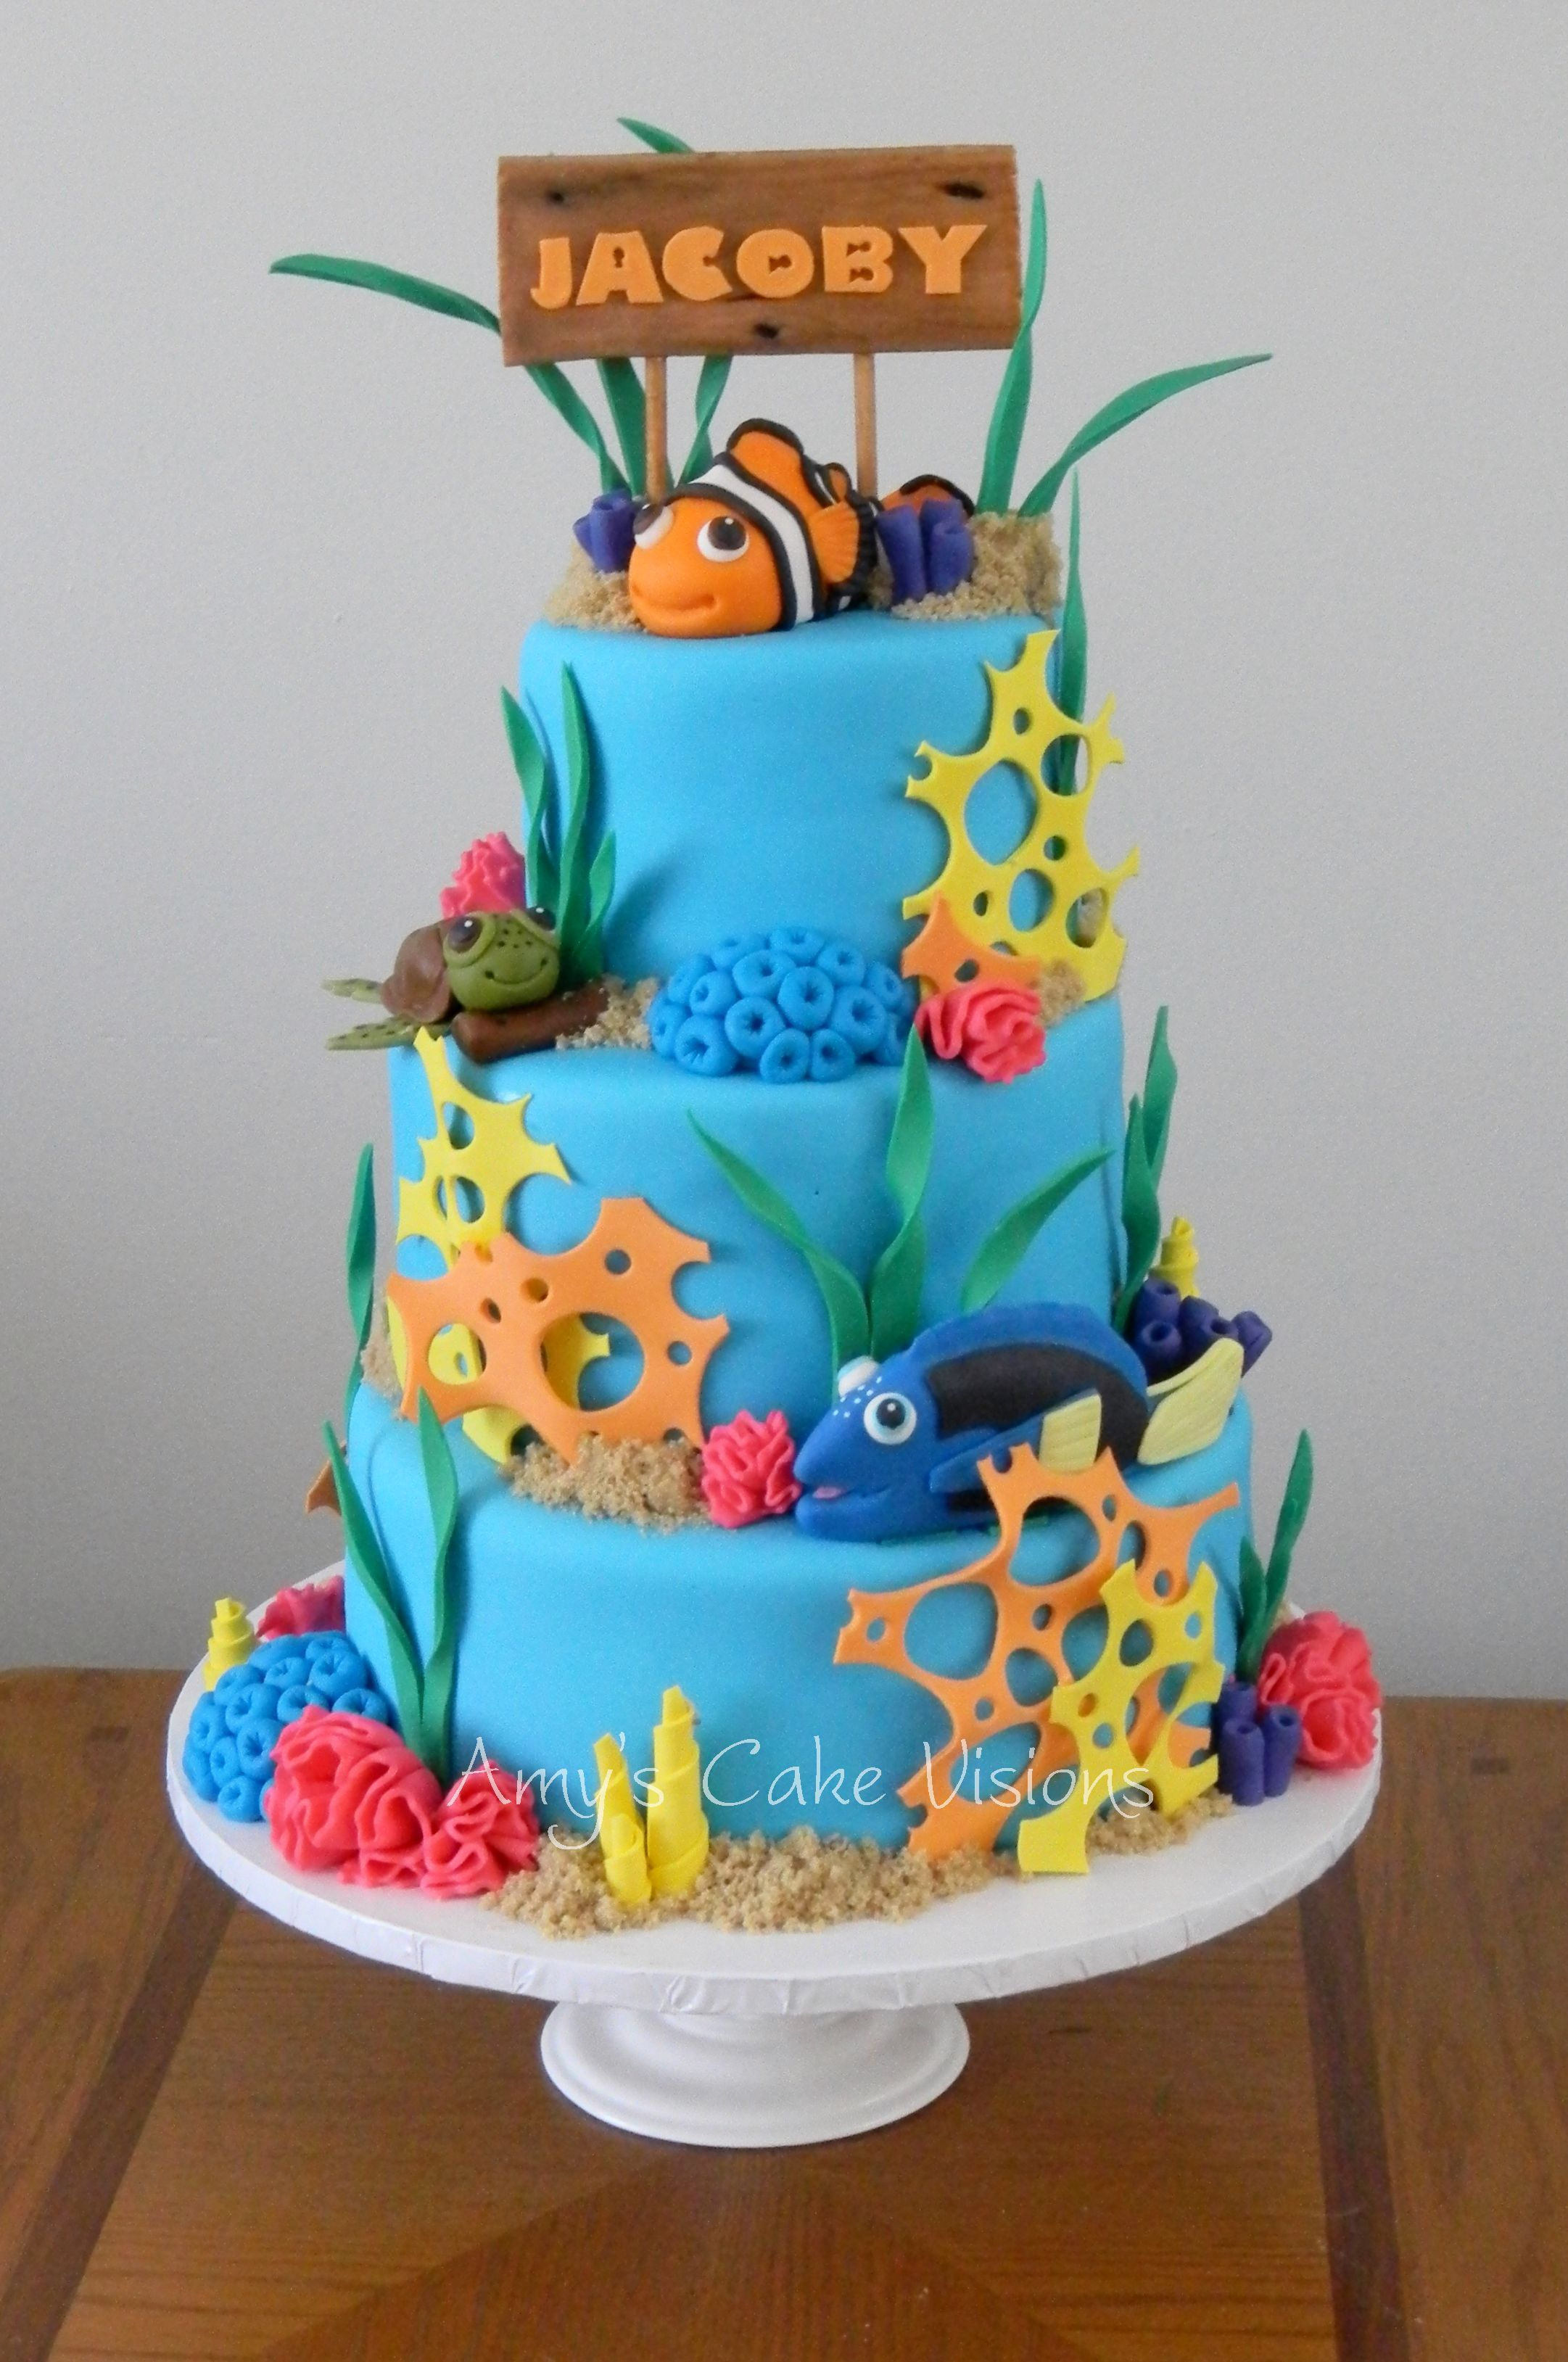 Jacoby S Under The Sea Cake Birthday Cakes Shark Birthday Cakes Sea Cakes Nemo Cake